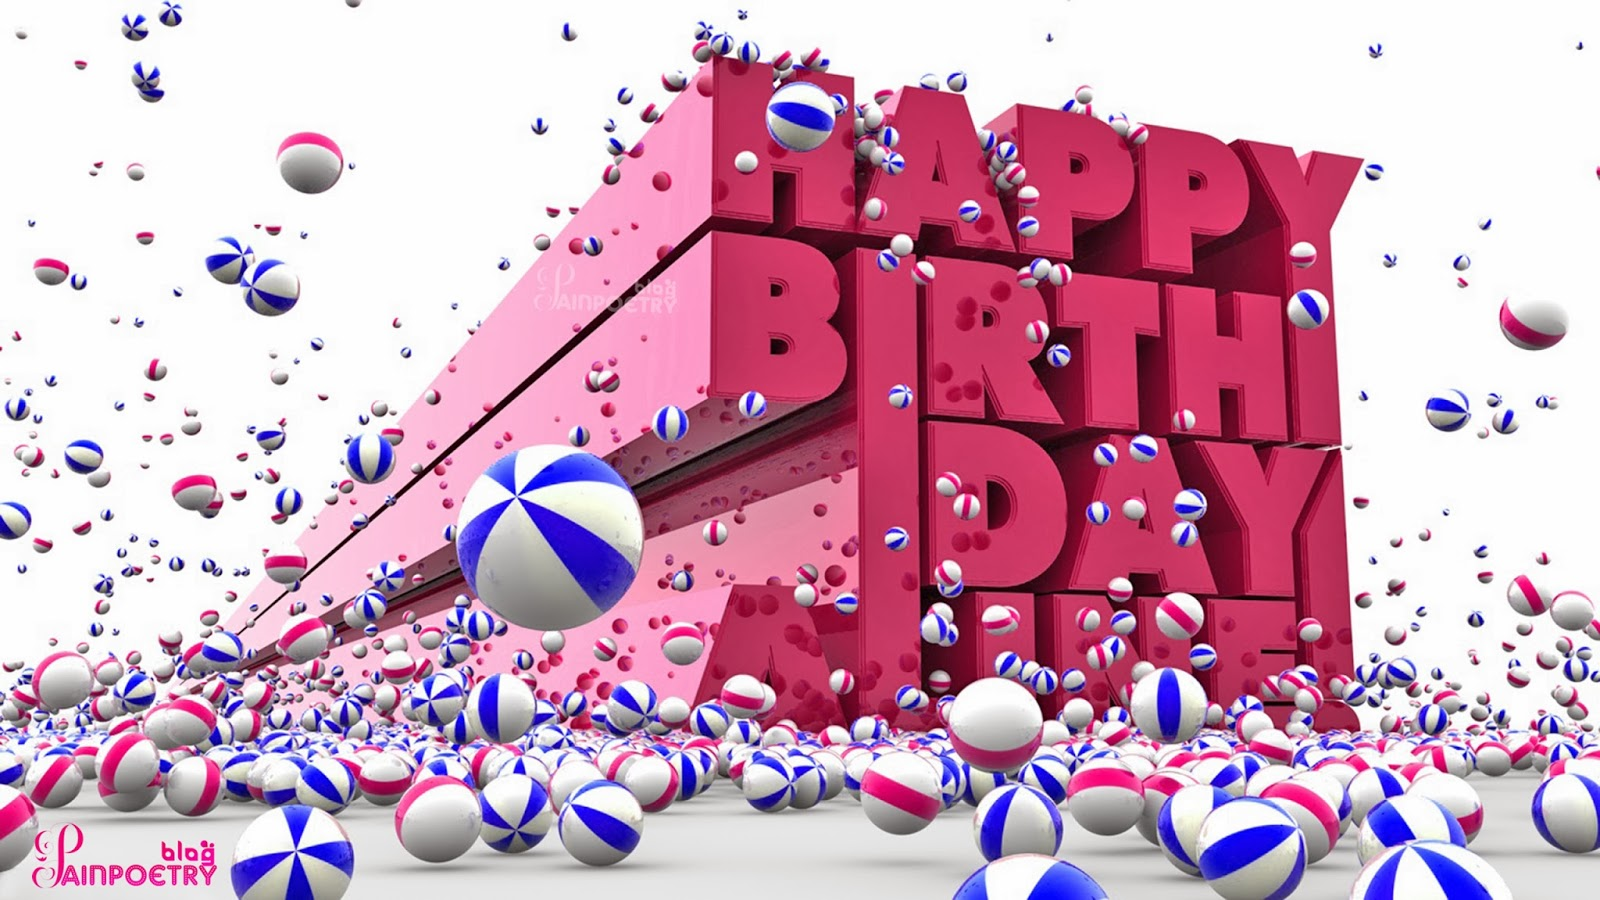 Happy-Birthday-Wishes-Image-Photo-Wallpaper-HD